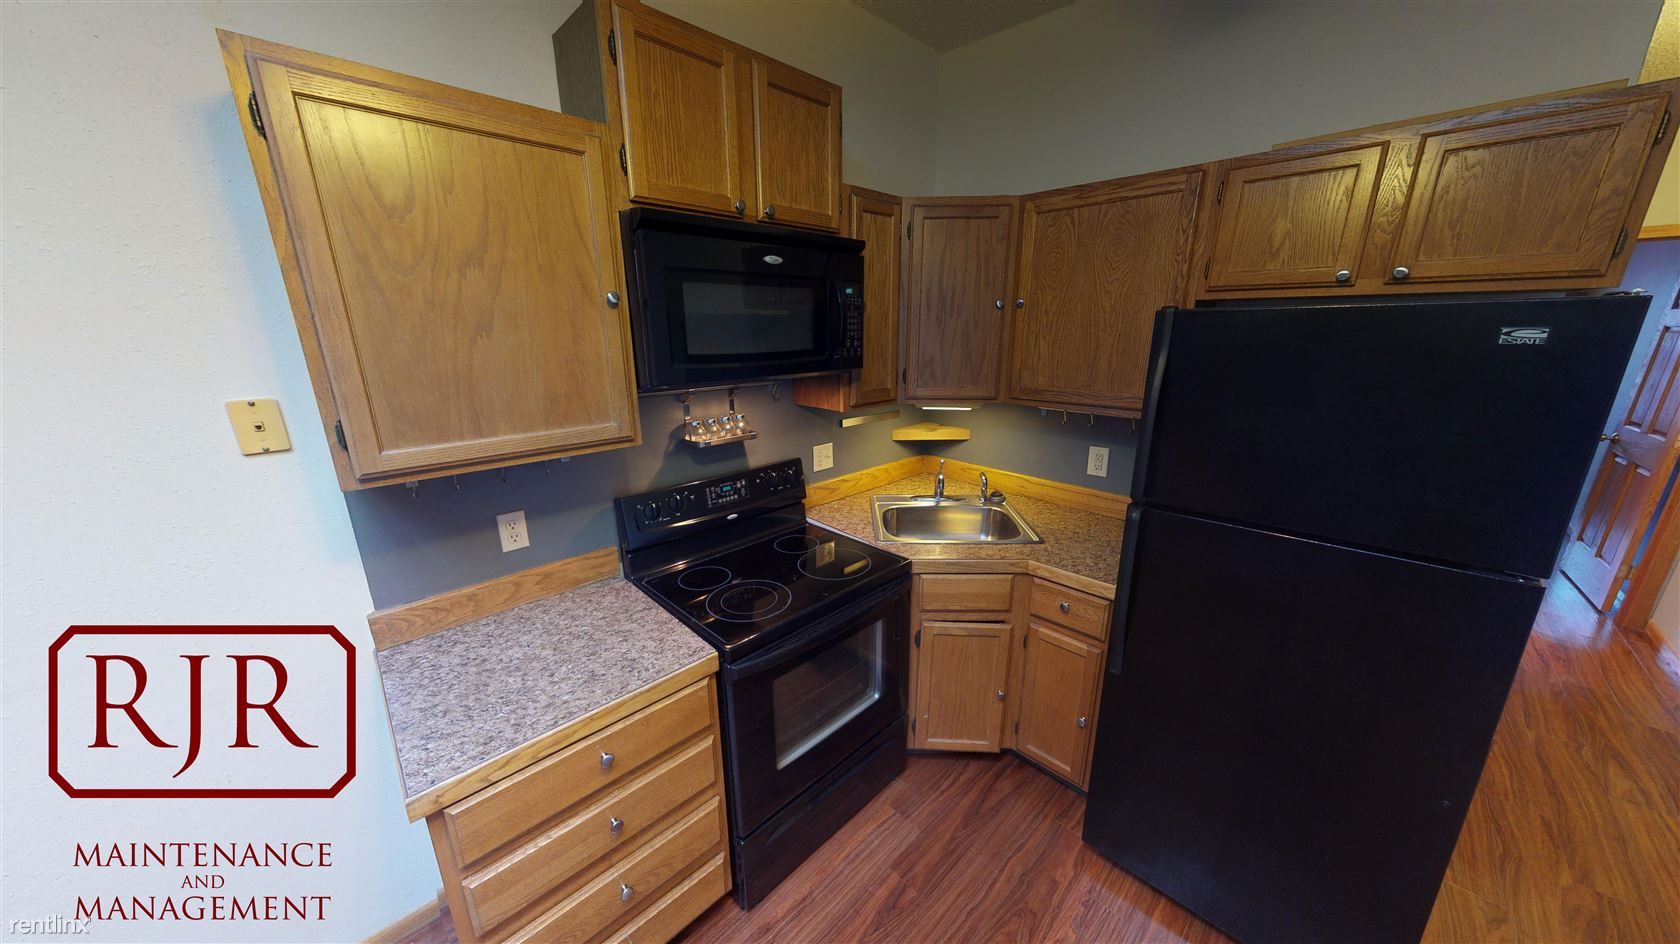 116 1/2 N 5th St - 799USD / month